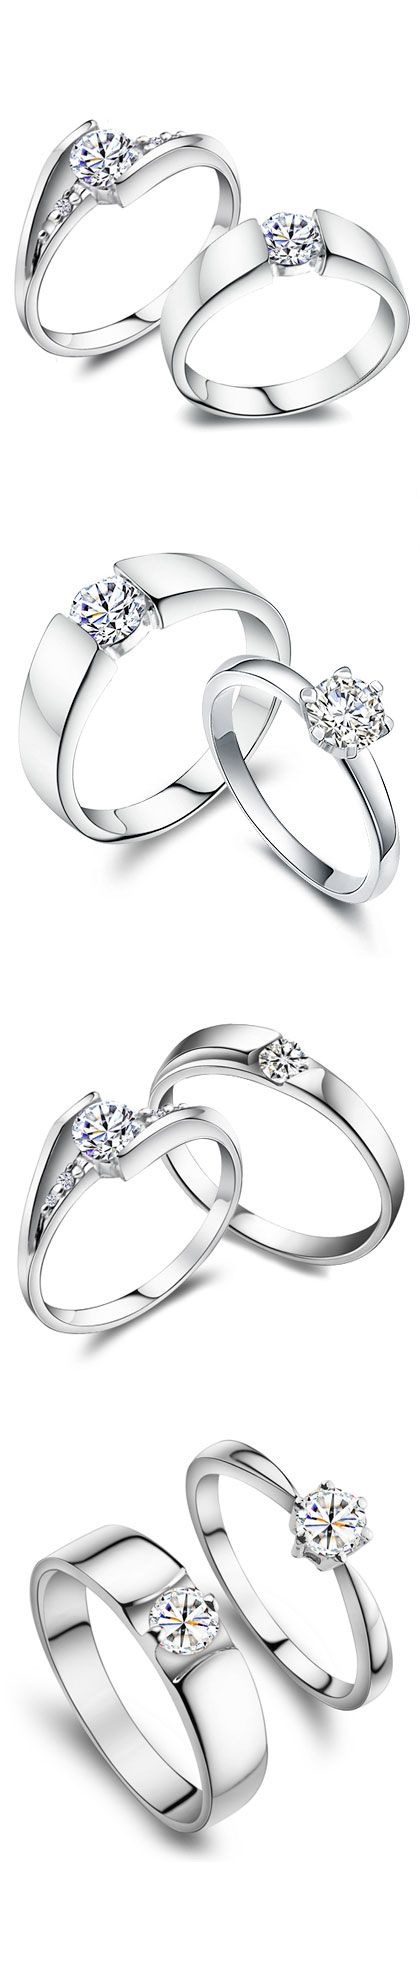 Matching His Hers Promise Rings, Couples Wedding Jewelry Set, Sterling Silver + Cubic Zirconia Diamonds | iDream-Jewelry.Com